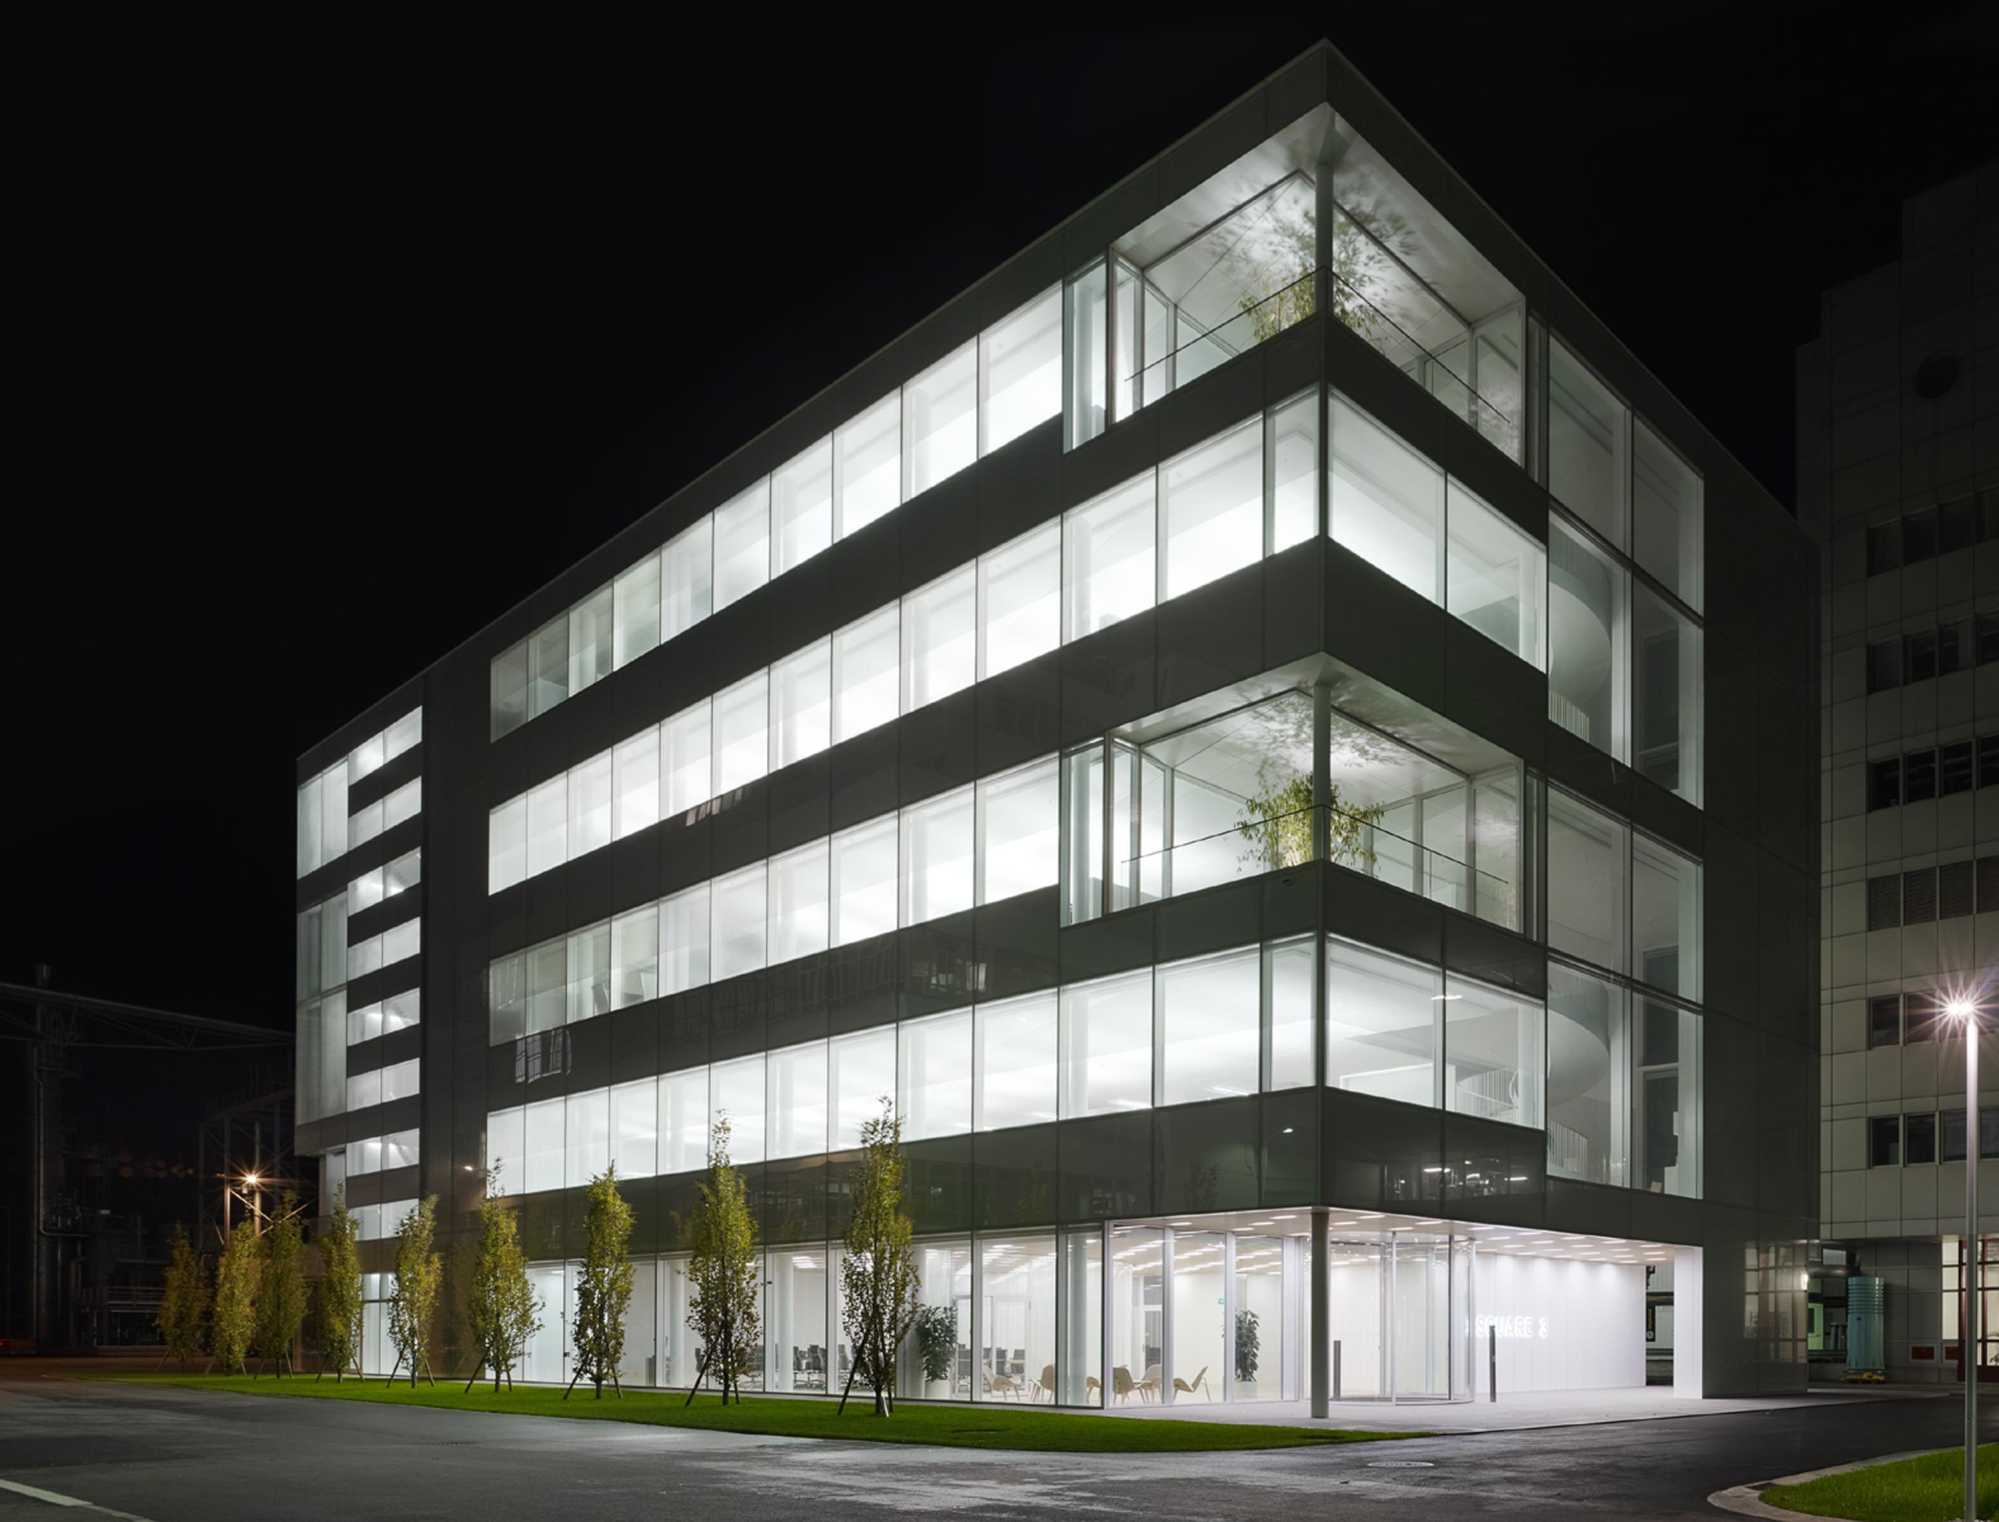 Maki Office Building & Taking Care of Business: New German Office Building Uses GE ... azcodes.com